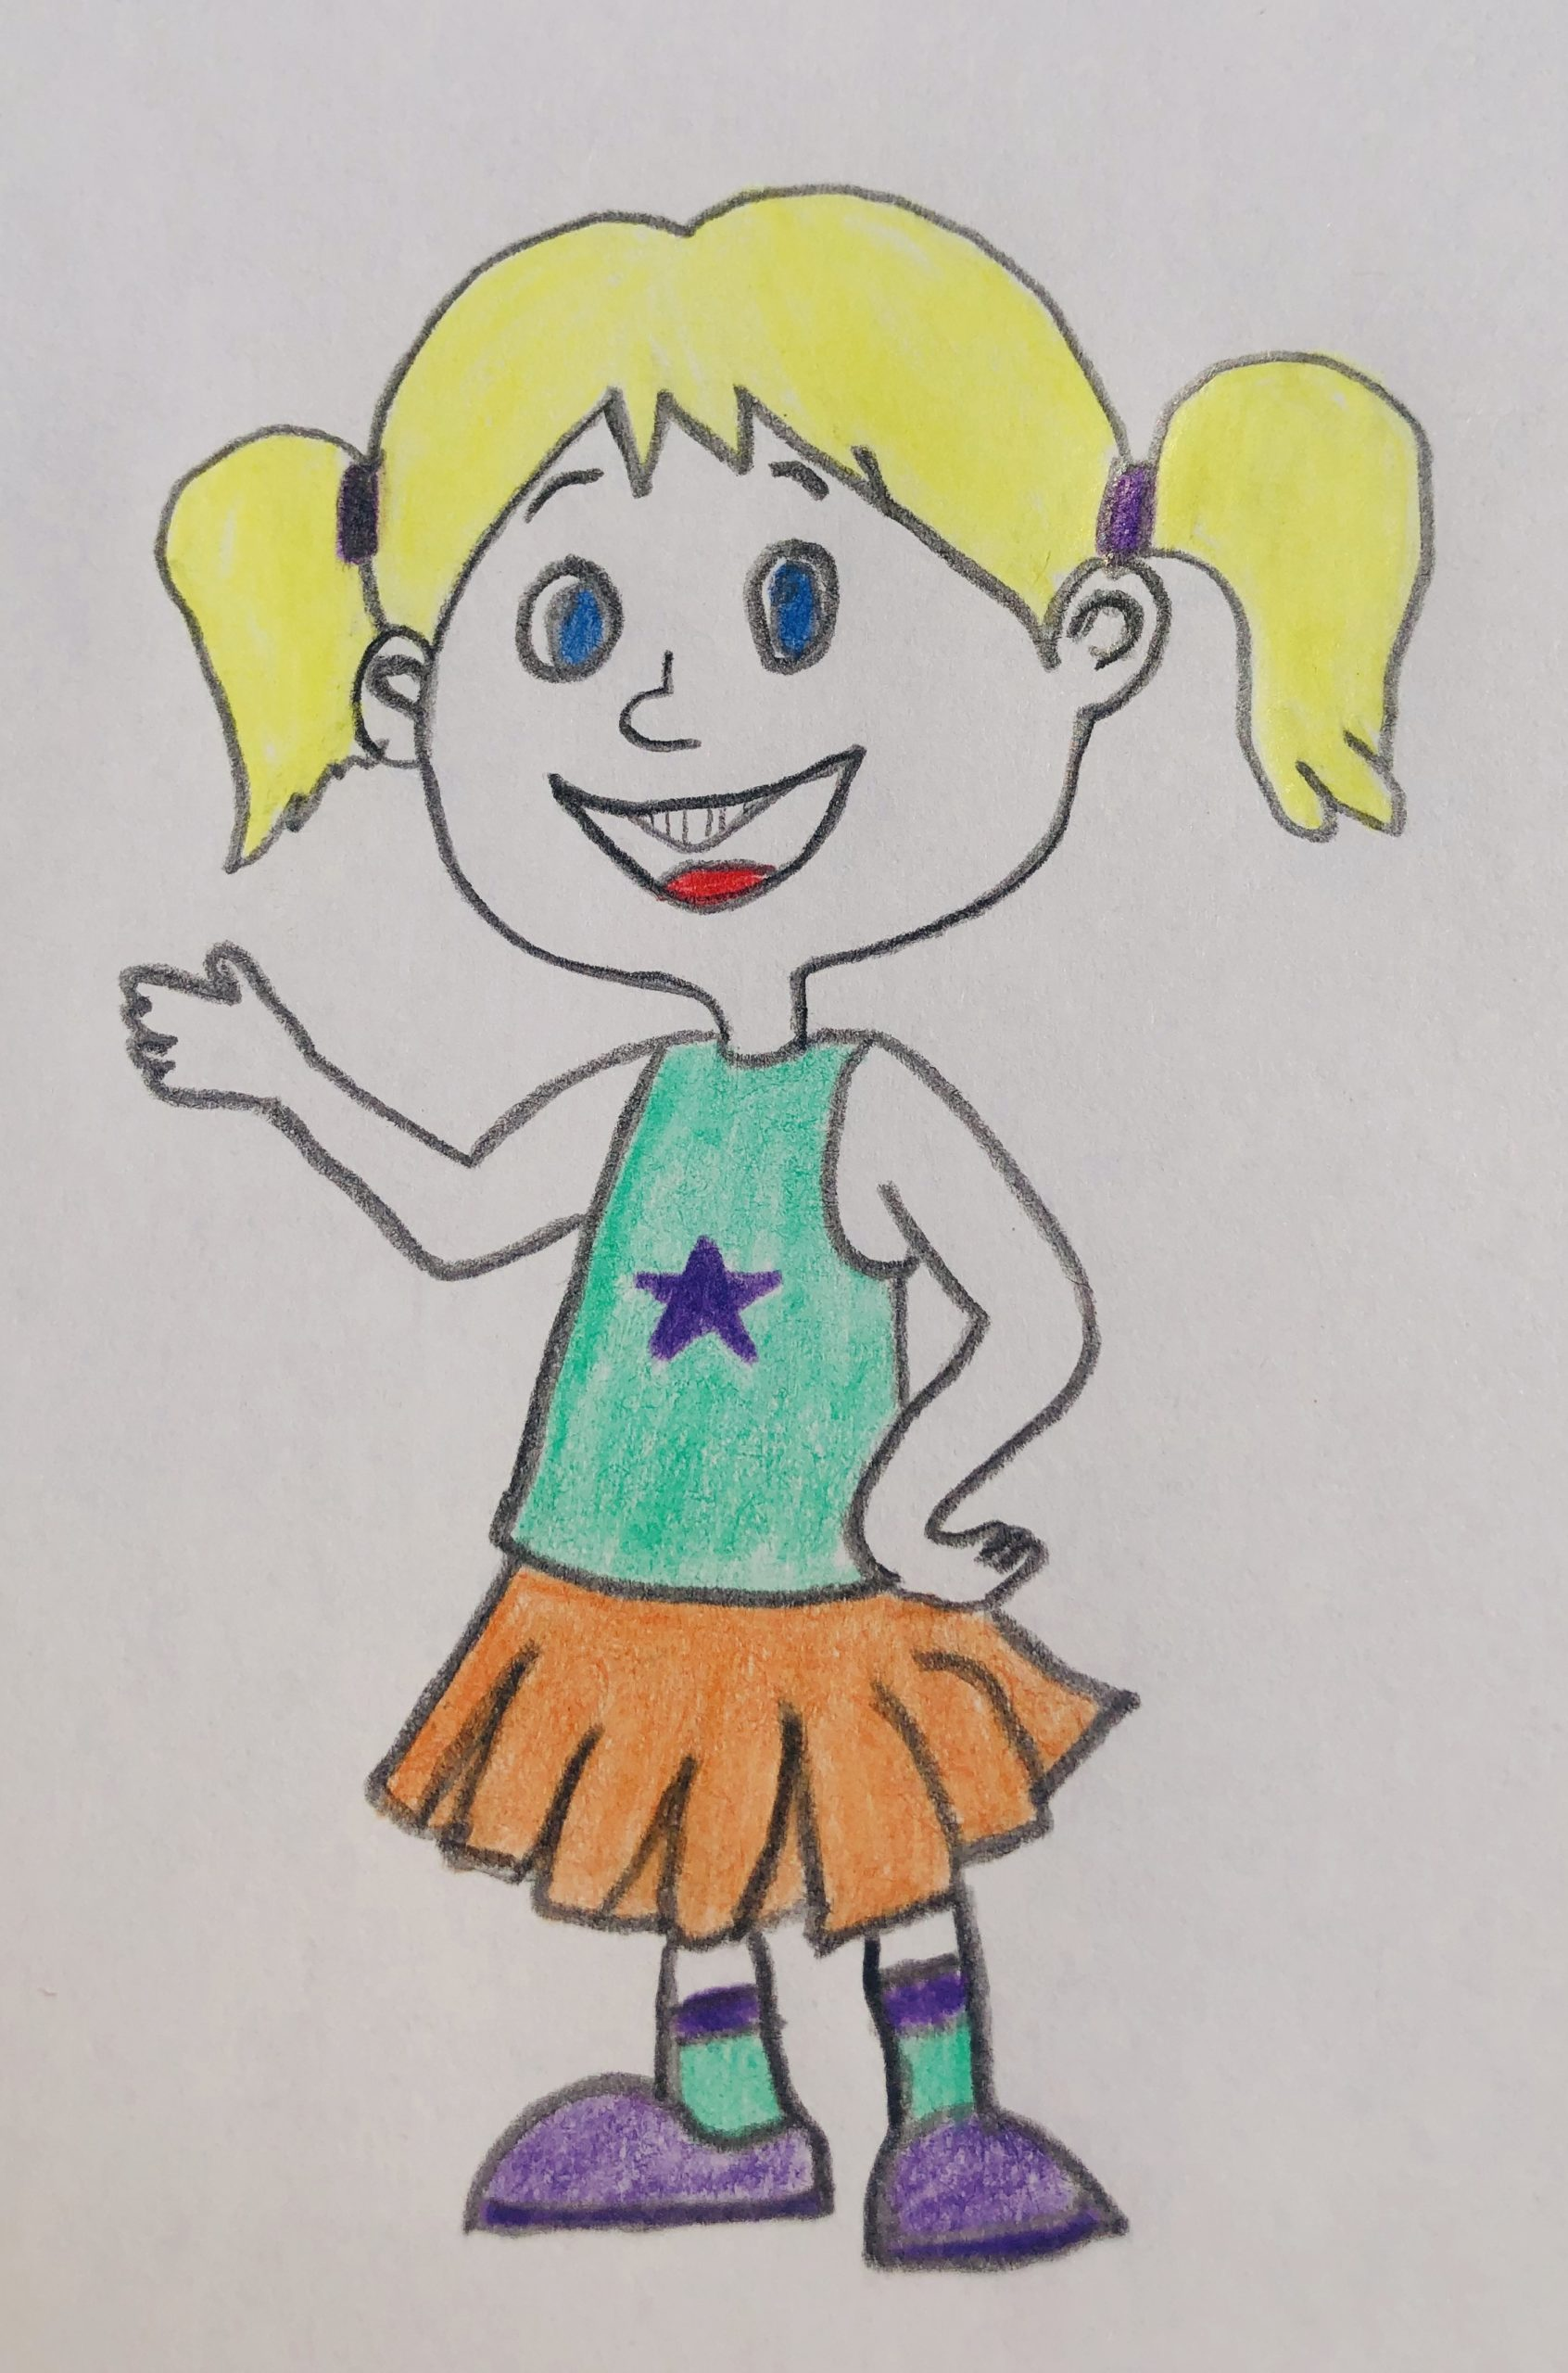 A picture of a pig-tailed blonde haired girl who is Hannah in the story, The Case of the Missing Easter egg. She is wearing a teal tank top, an orange skirt and purple tennis shoes.